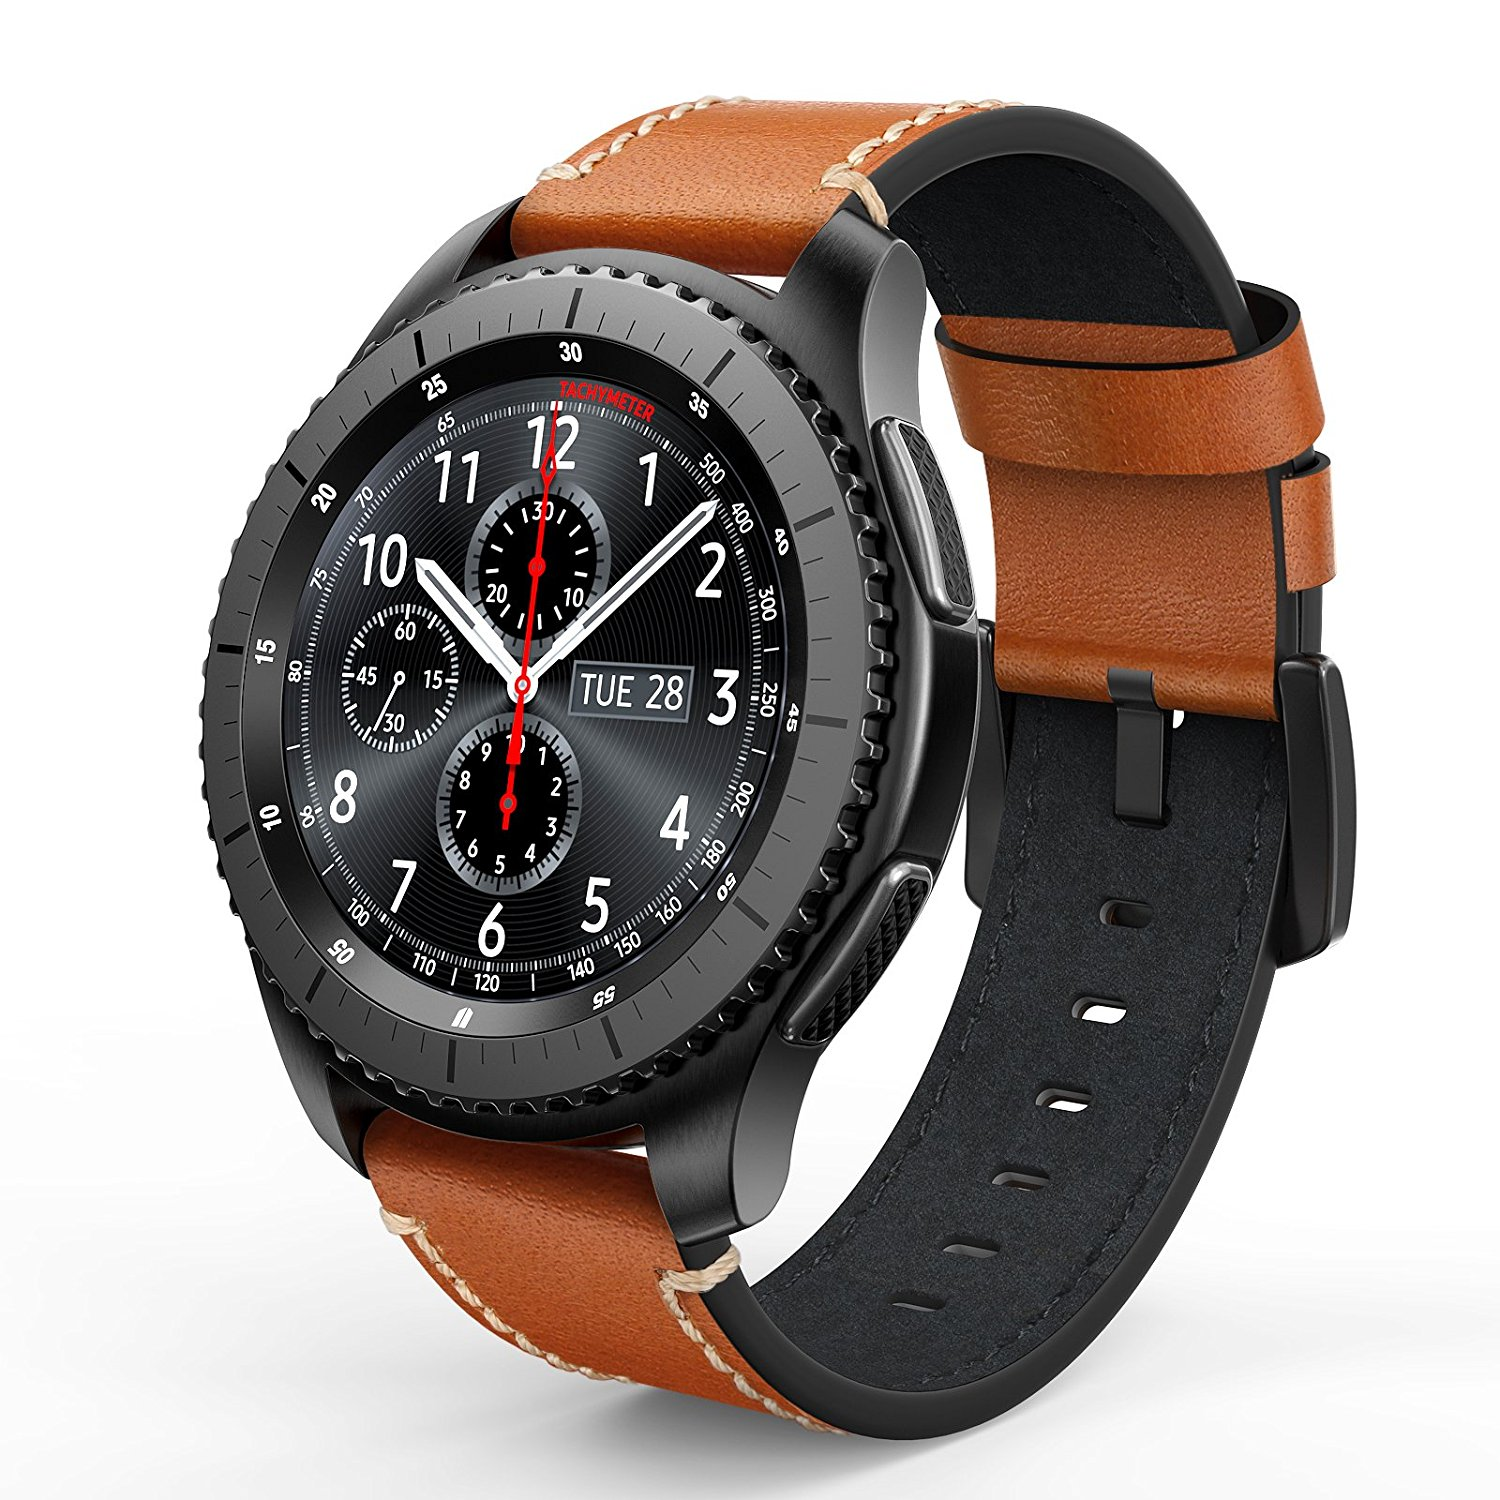 8588a91a7a4 Best bands for Gear S3 Frontier and Classic. Swees Genuine Leather Band